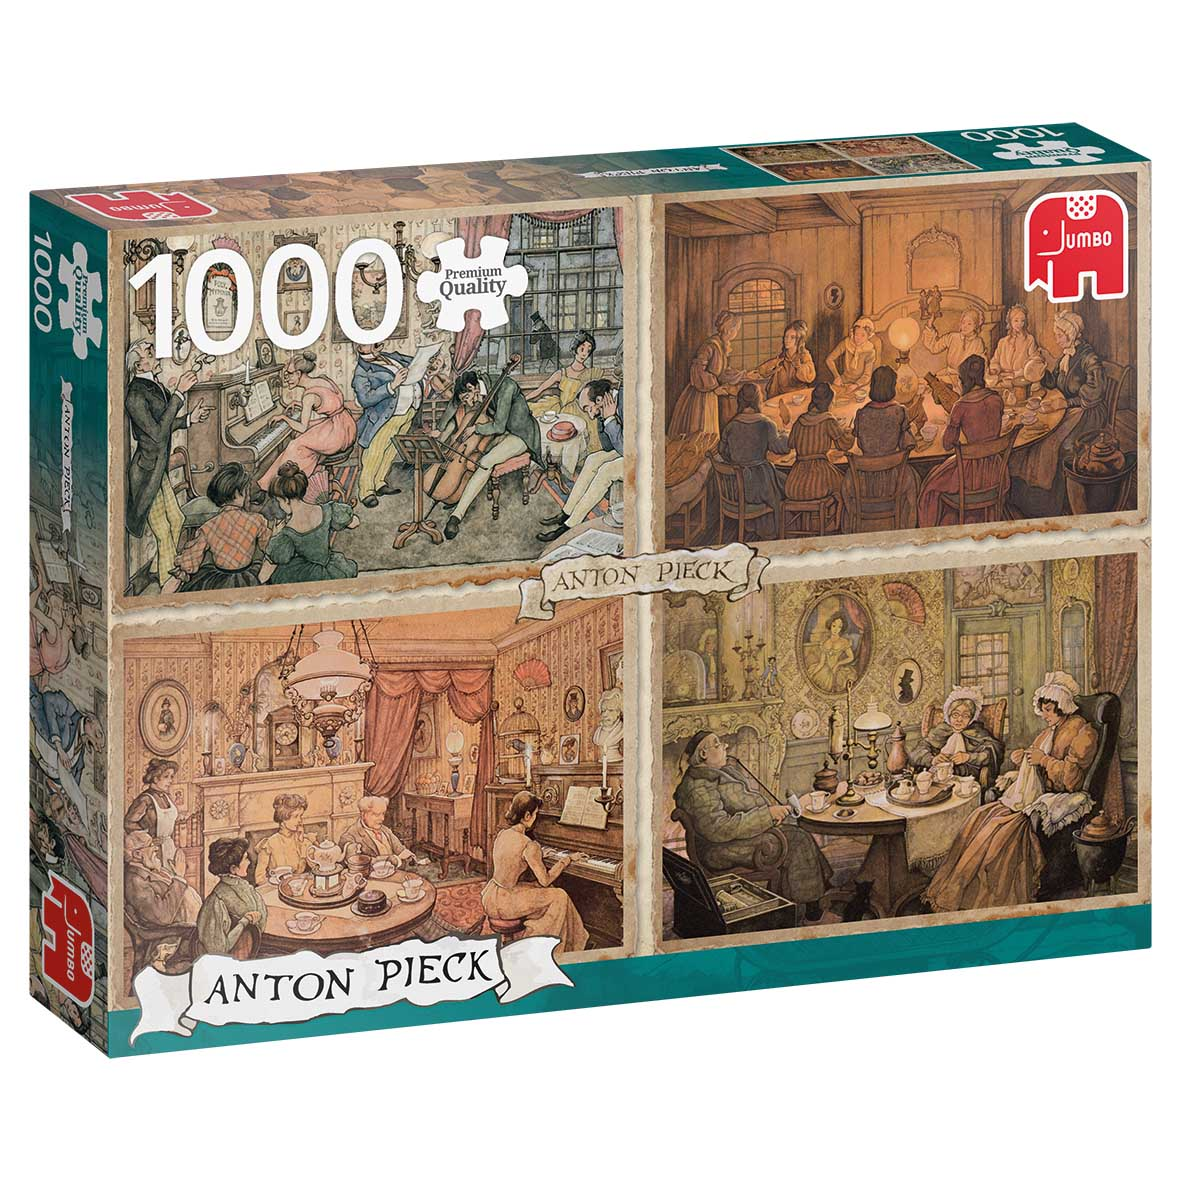 Living Room Entertainment Domestic Scene Jigsaw Puzzle